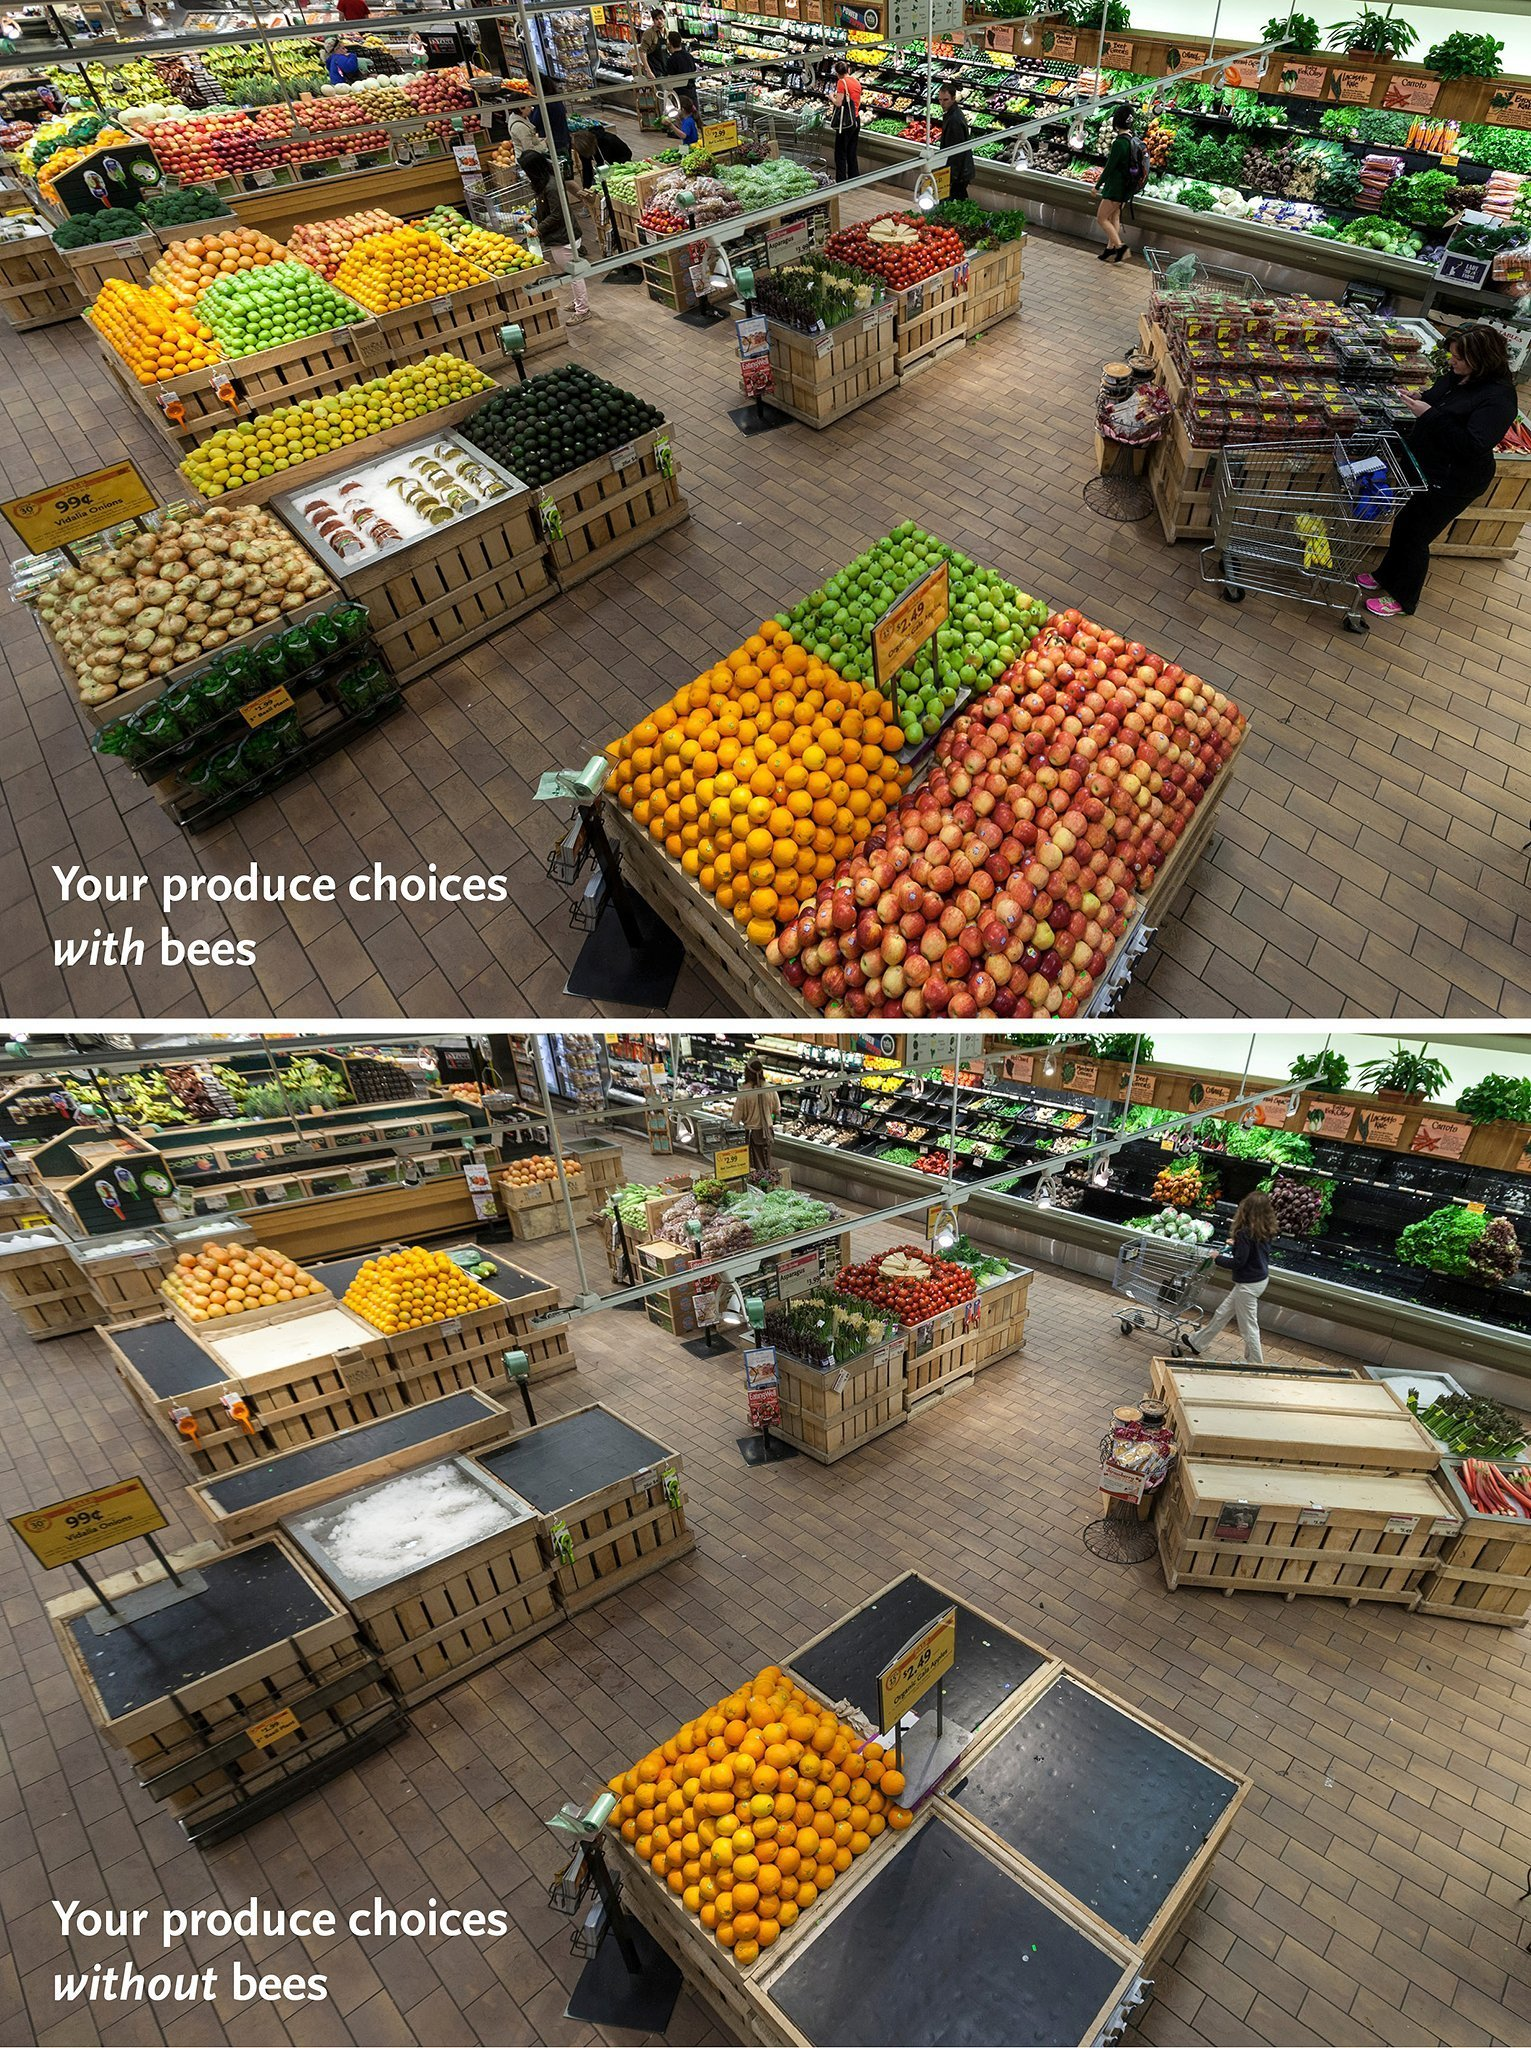 This is what your grocery store looks like without bees